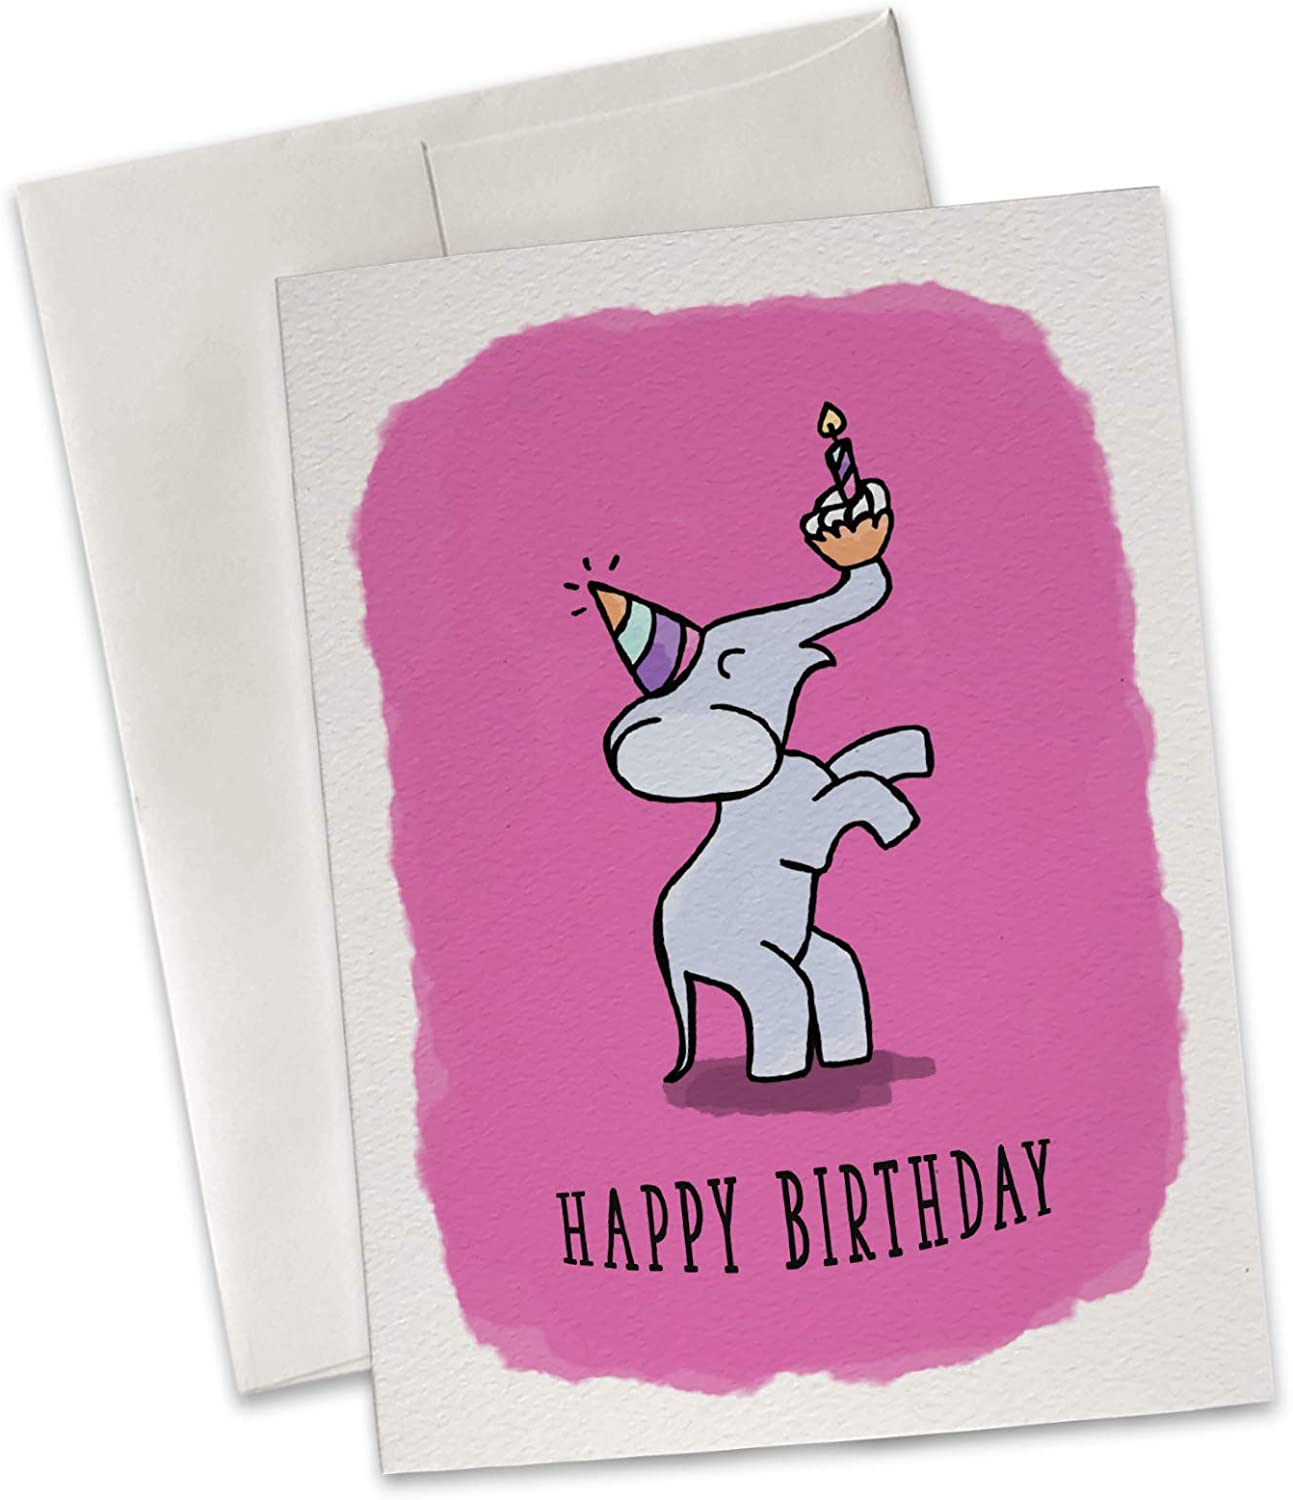 Party Elephant Birthday Card With Envelope - 100% Recycled Cute Greeting Card